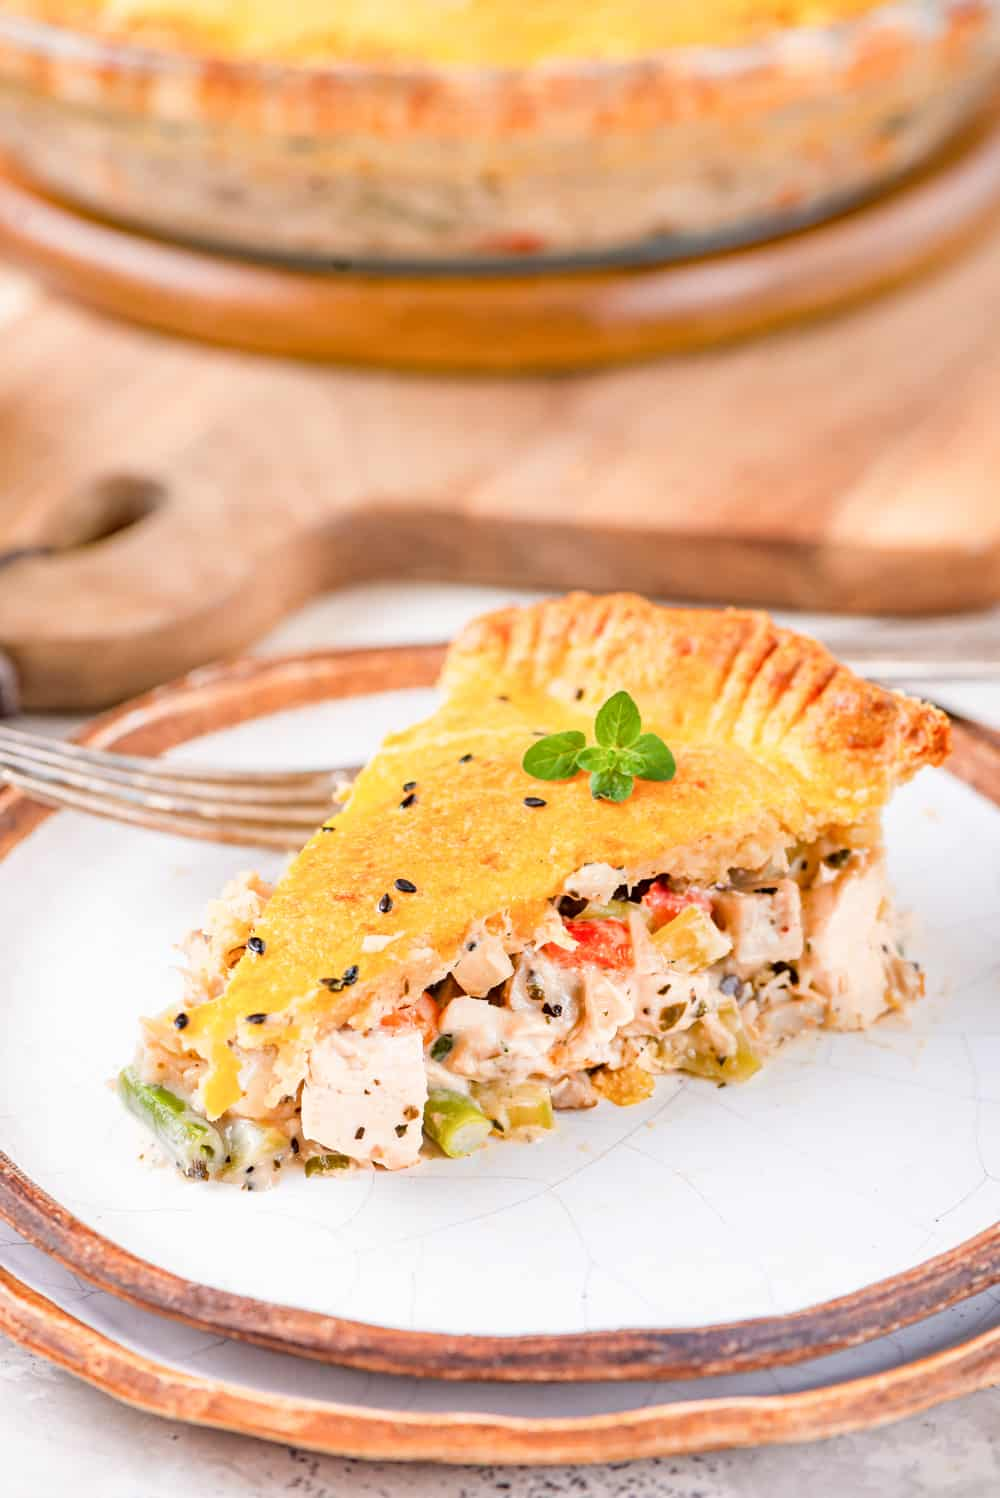 Chicken pot pie on a plate, and garnished with micro-greens.